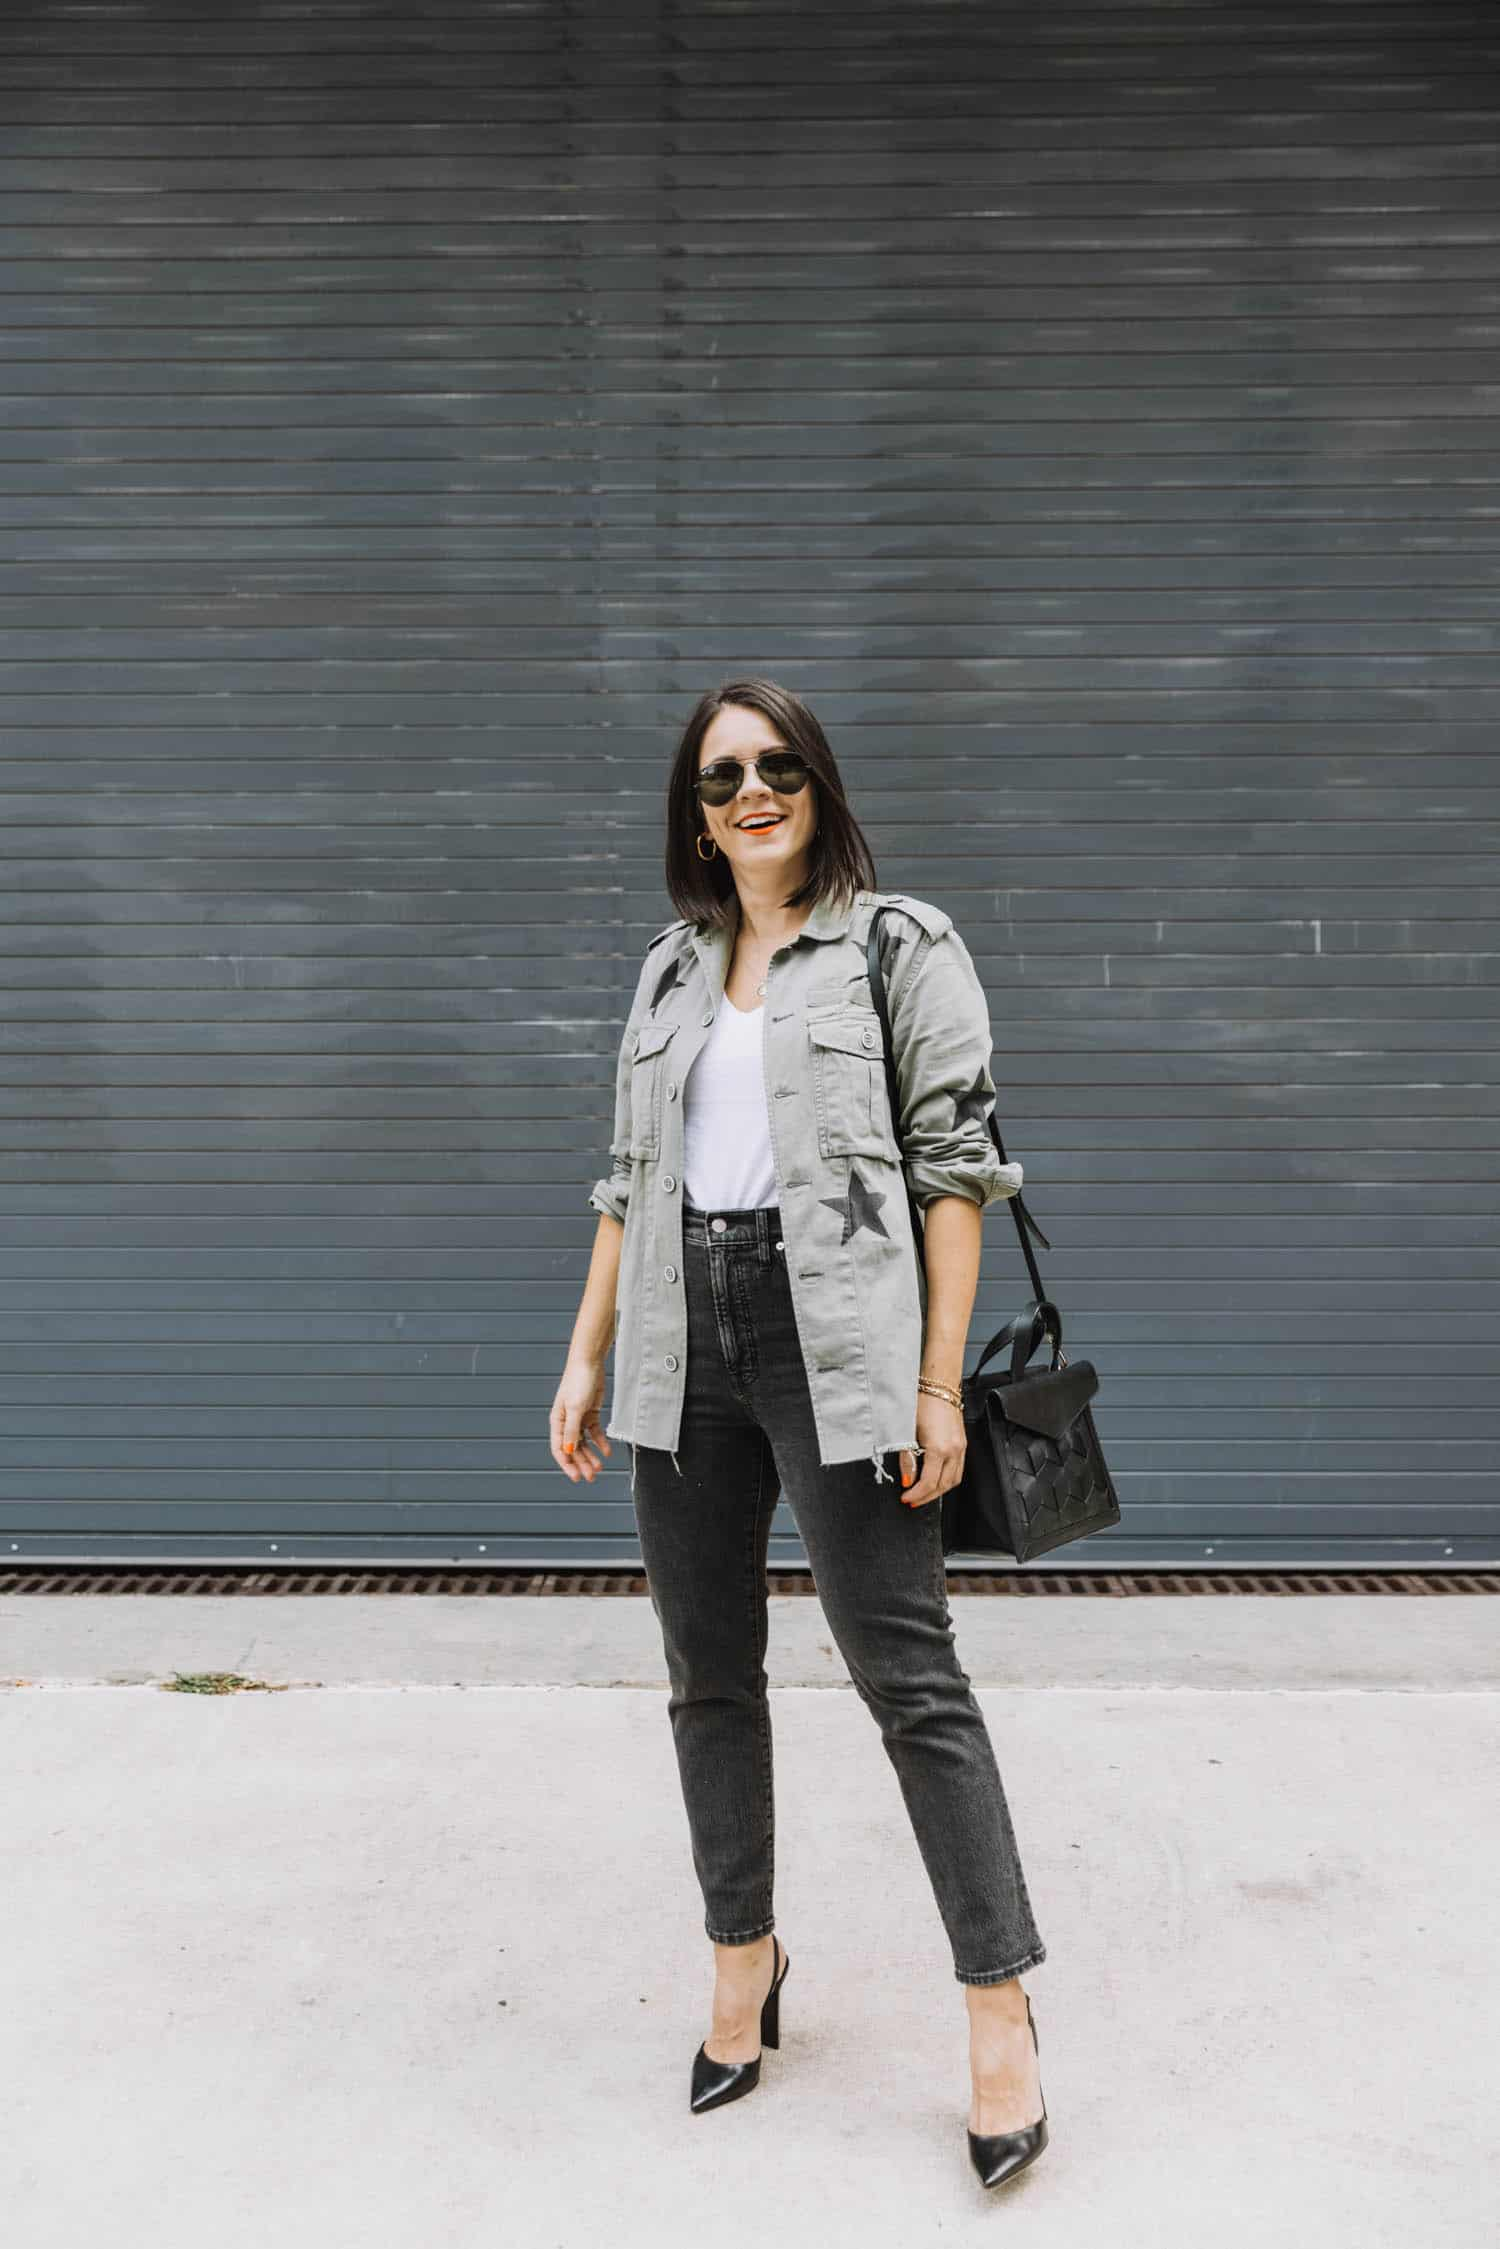 Utility jacket outfit ideas for fall